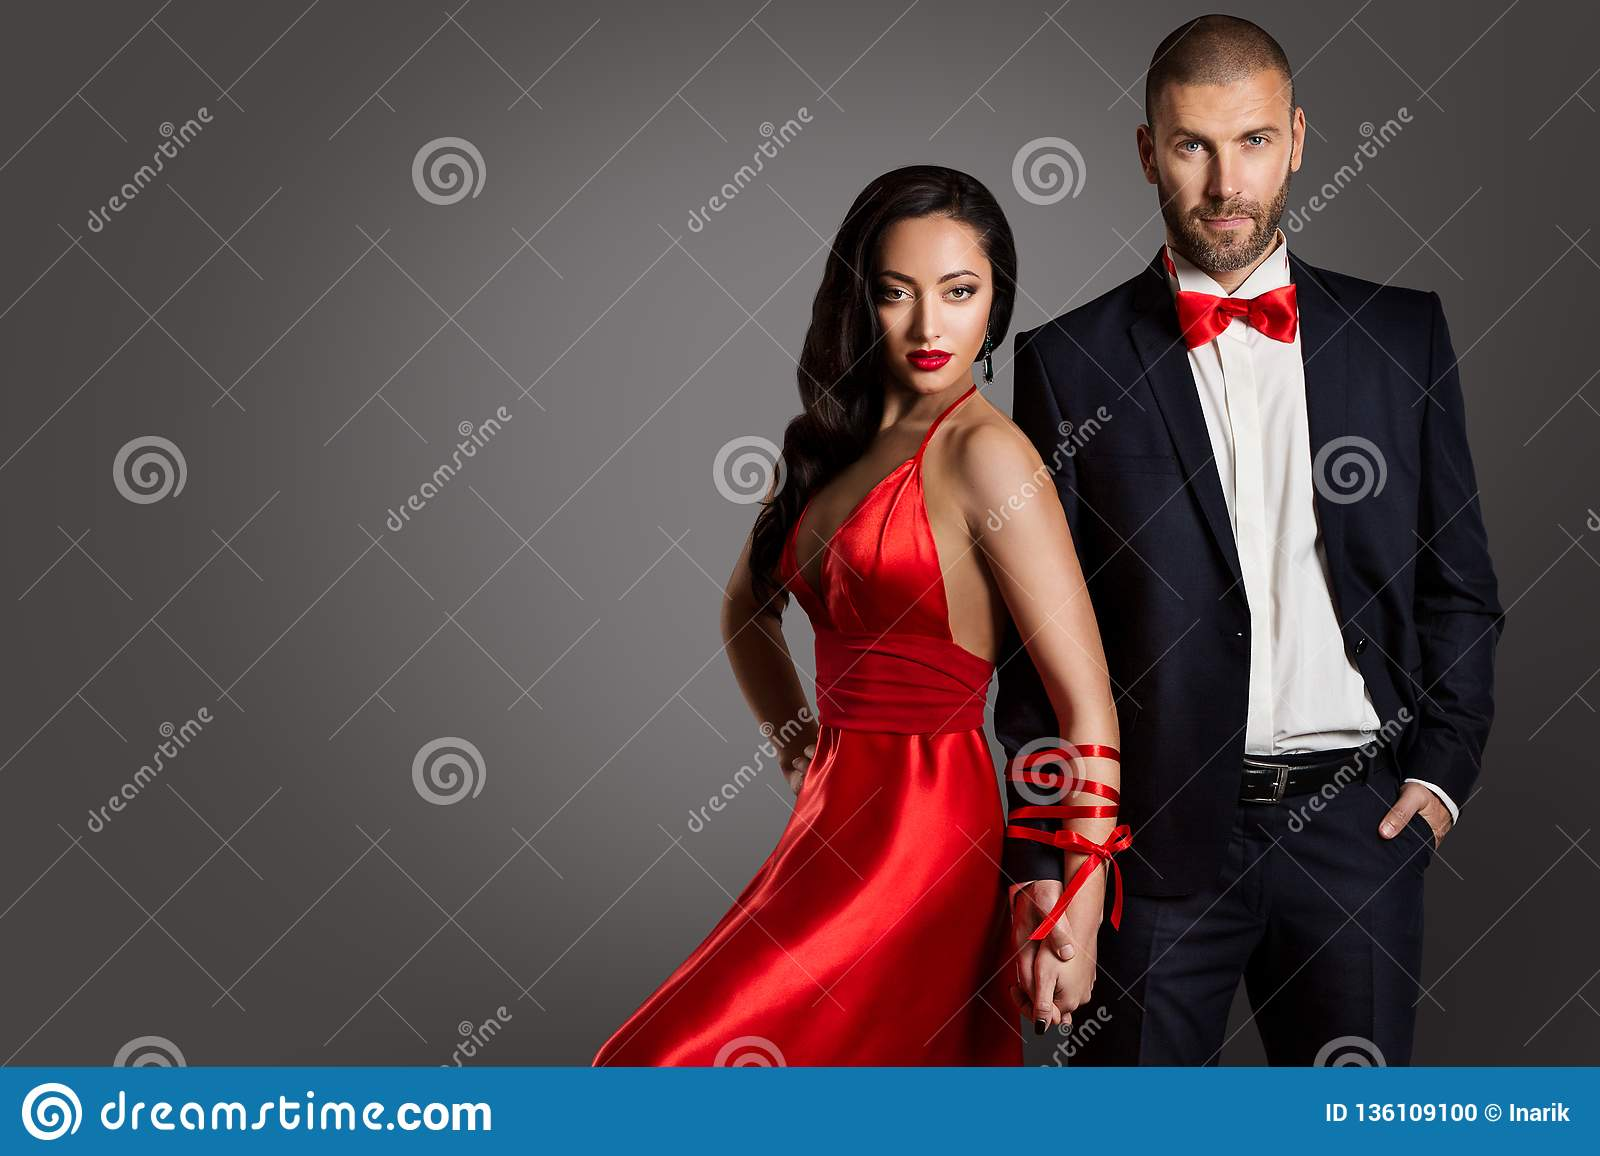 Fashion Couple, Woman and Man Arms Bounded by Ribbon, Red Dress Black Suit